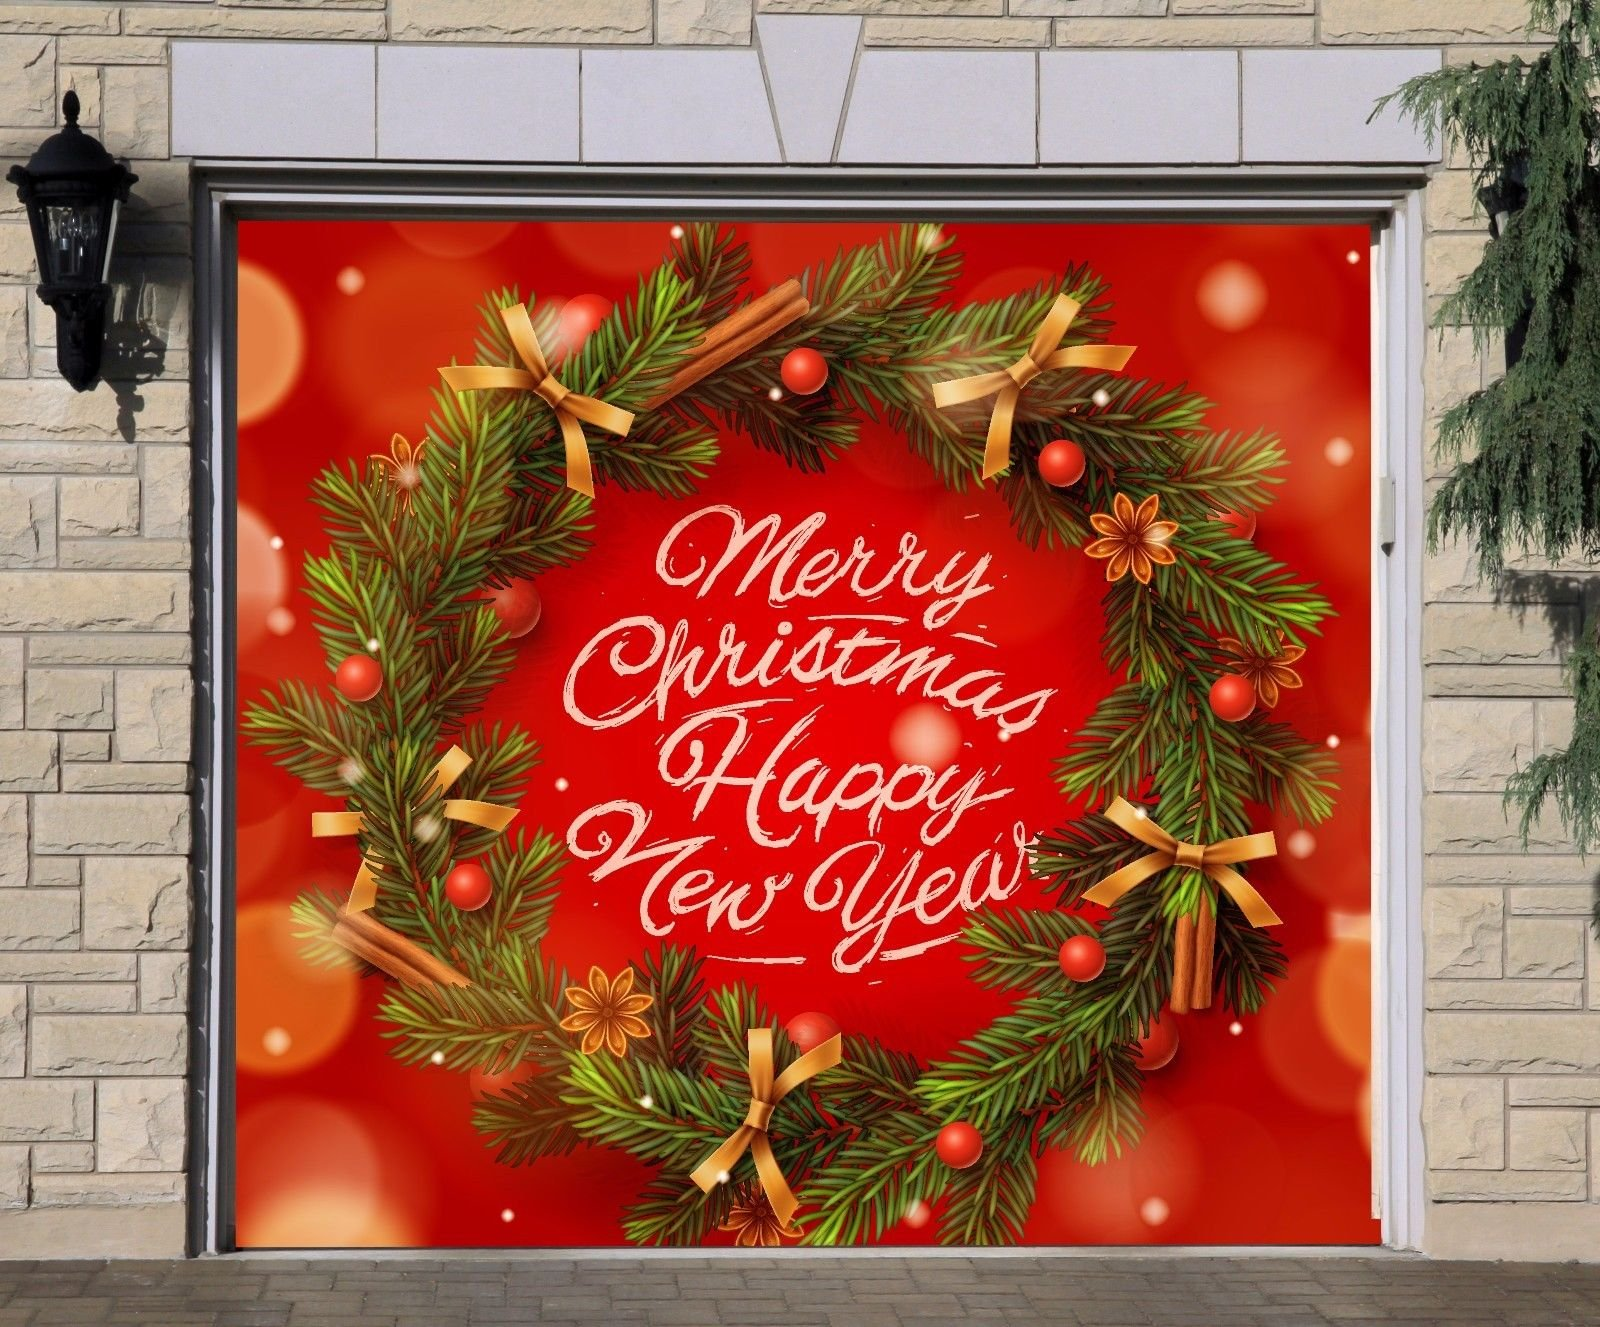 Billboard 3D Effect Wreath Christmas for Single Car Garage Holiday Banner Door Murals Covers Outdoor Full Color Decor Print Decorations of House Garage Door Cover Size 83 x 89 inches DAV205